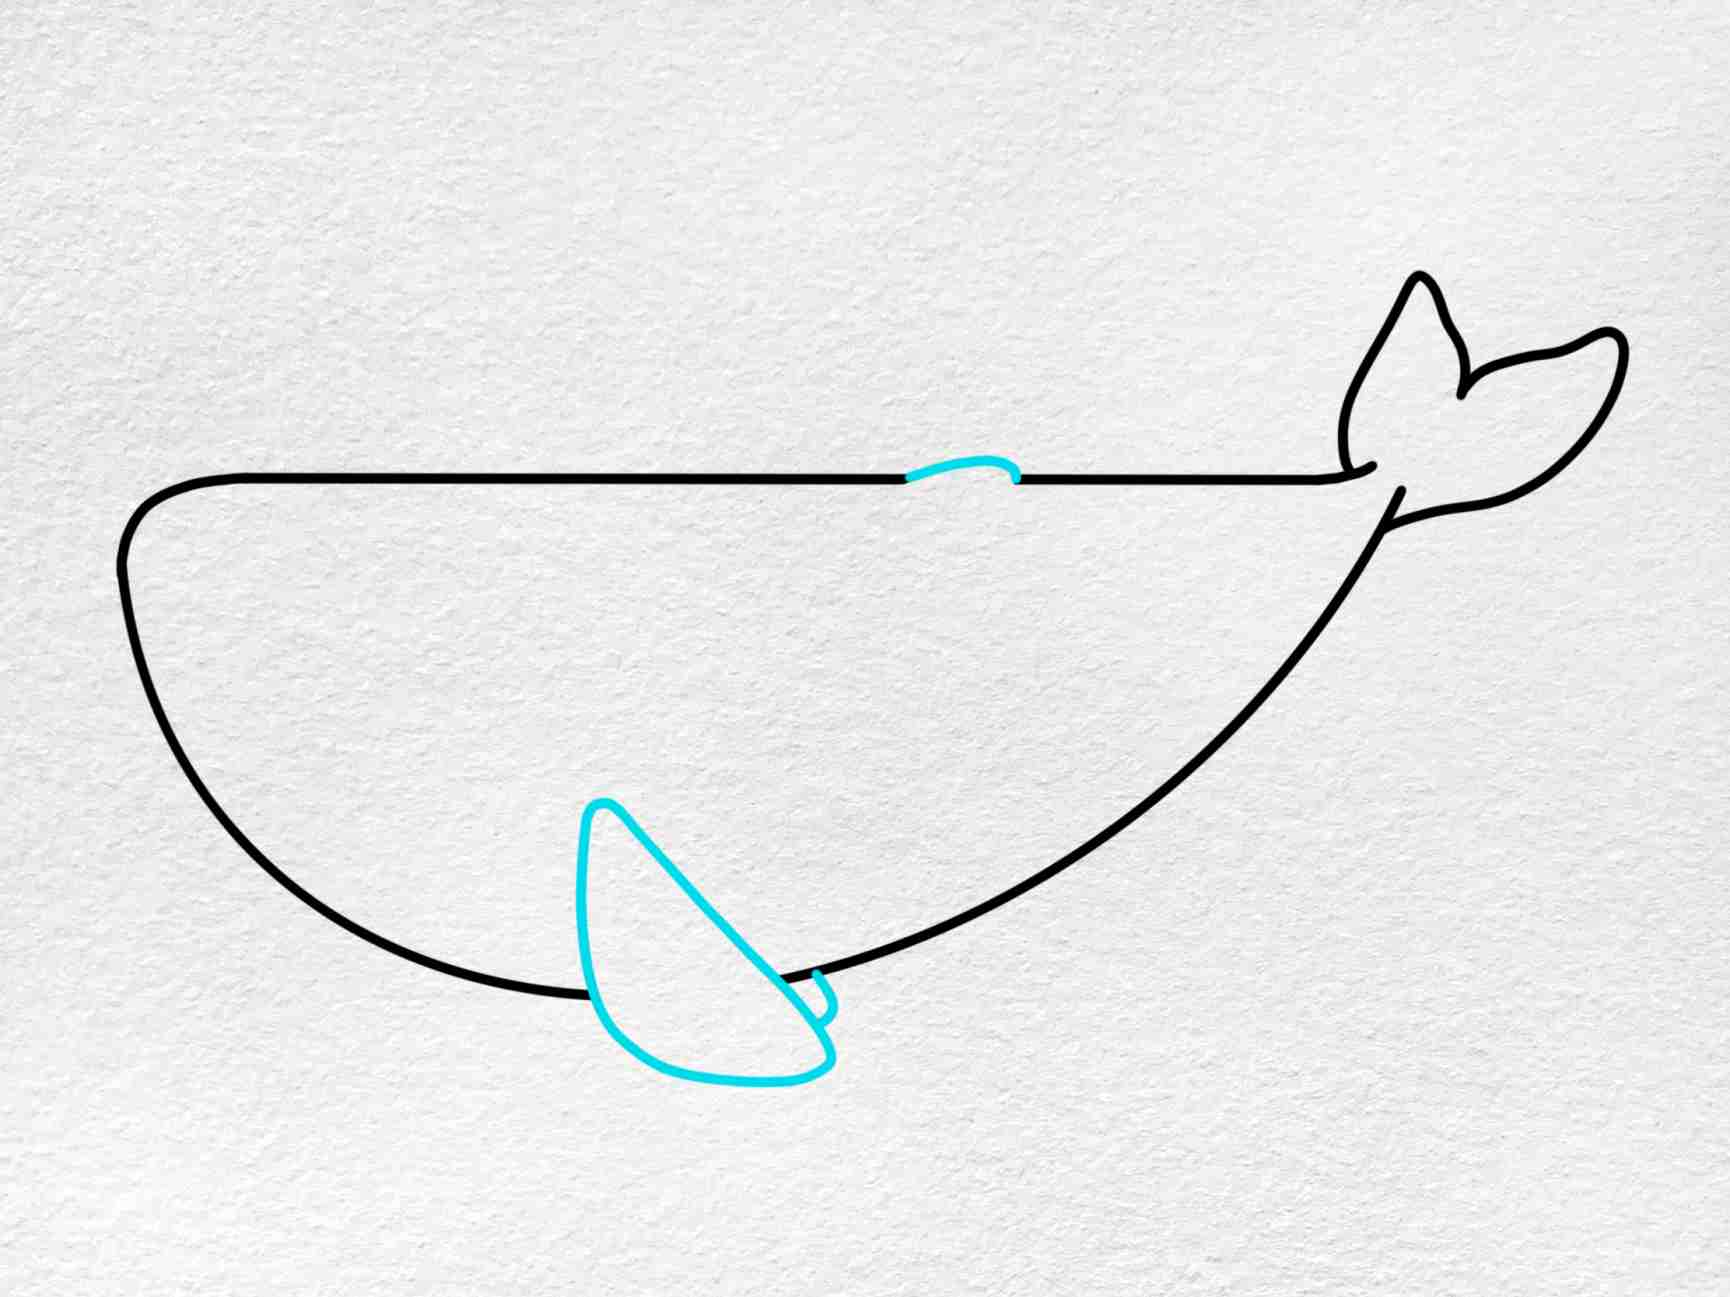 Cute Whale Drawing: Step 4